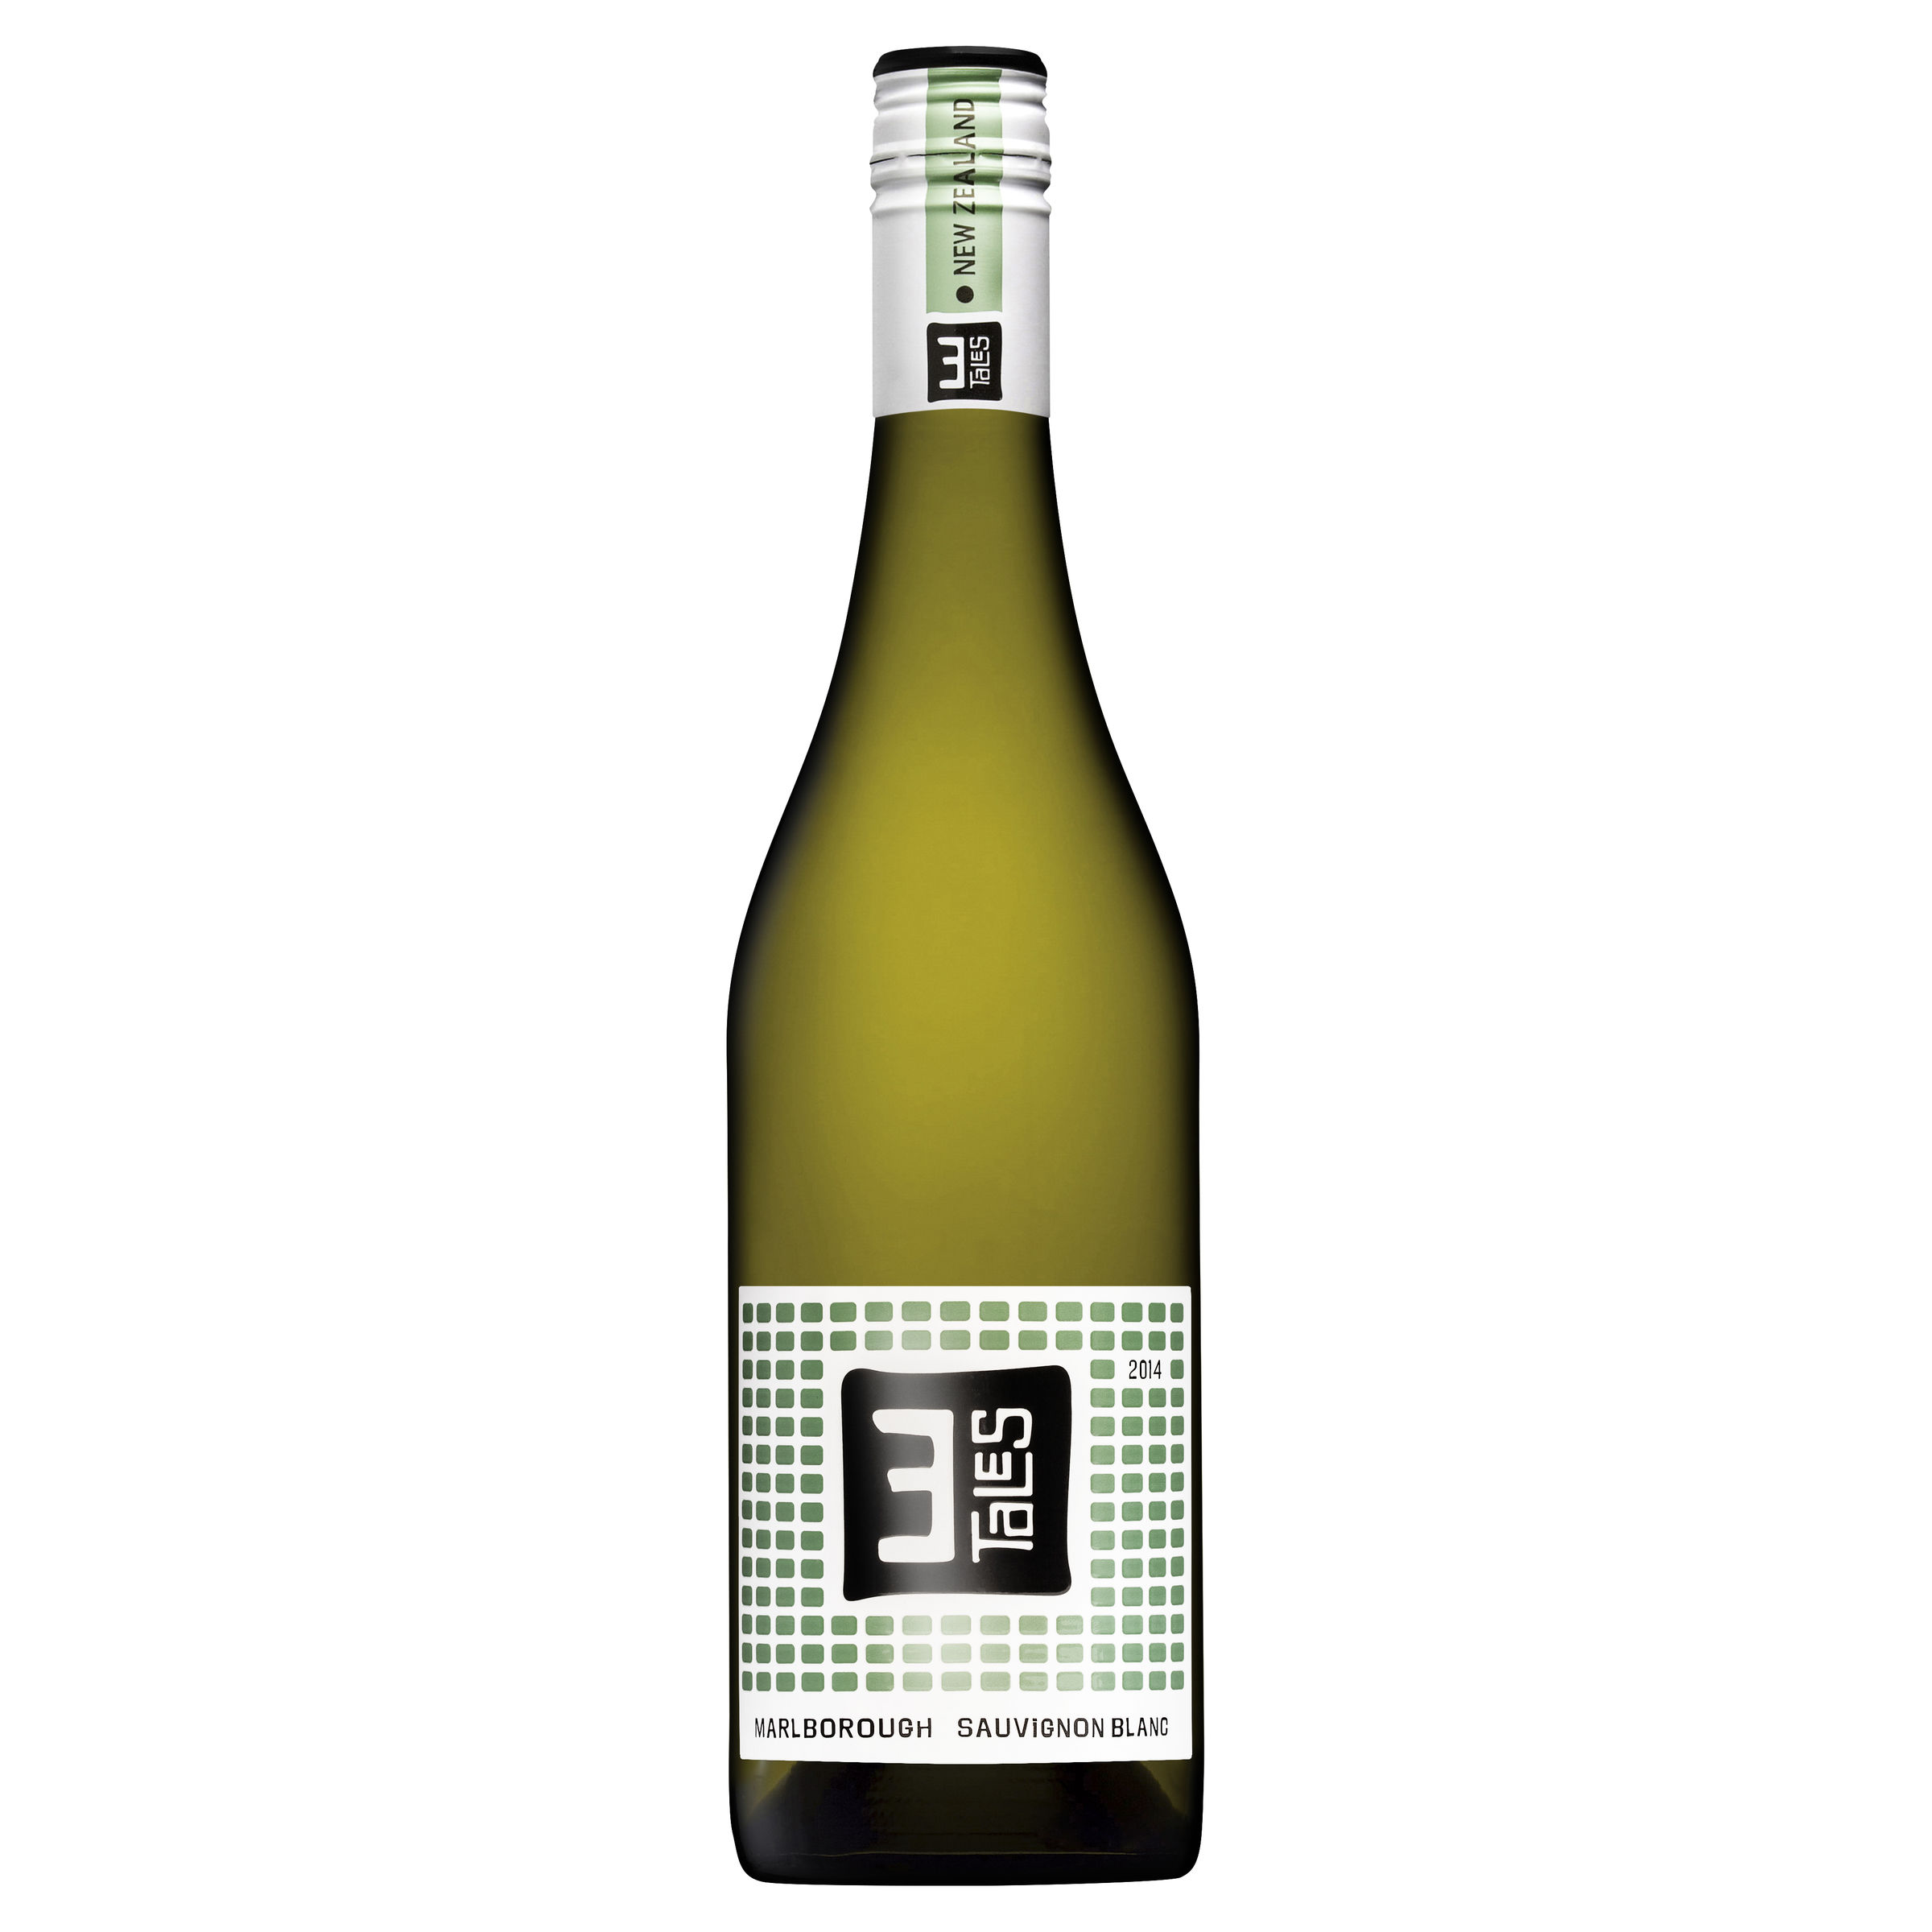 3 TALES MARLBOROUGH NZ SAUVIGNON BLANC